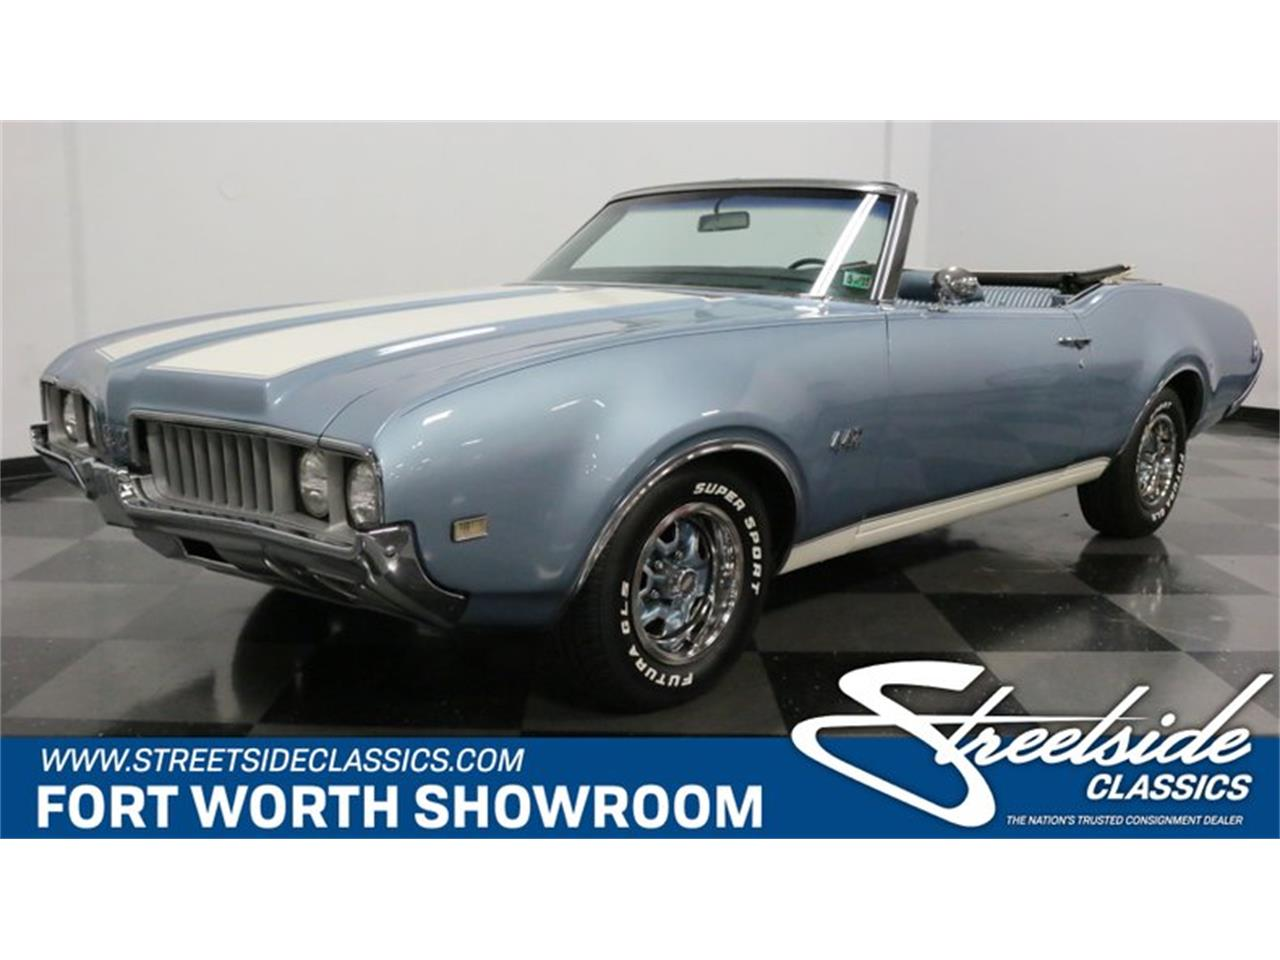 For Sale: 1969 Oldsmobile Cutlass in Ft Worth, Texas